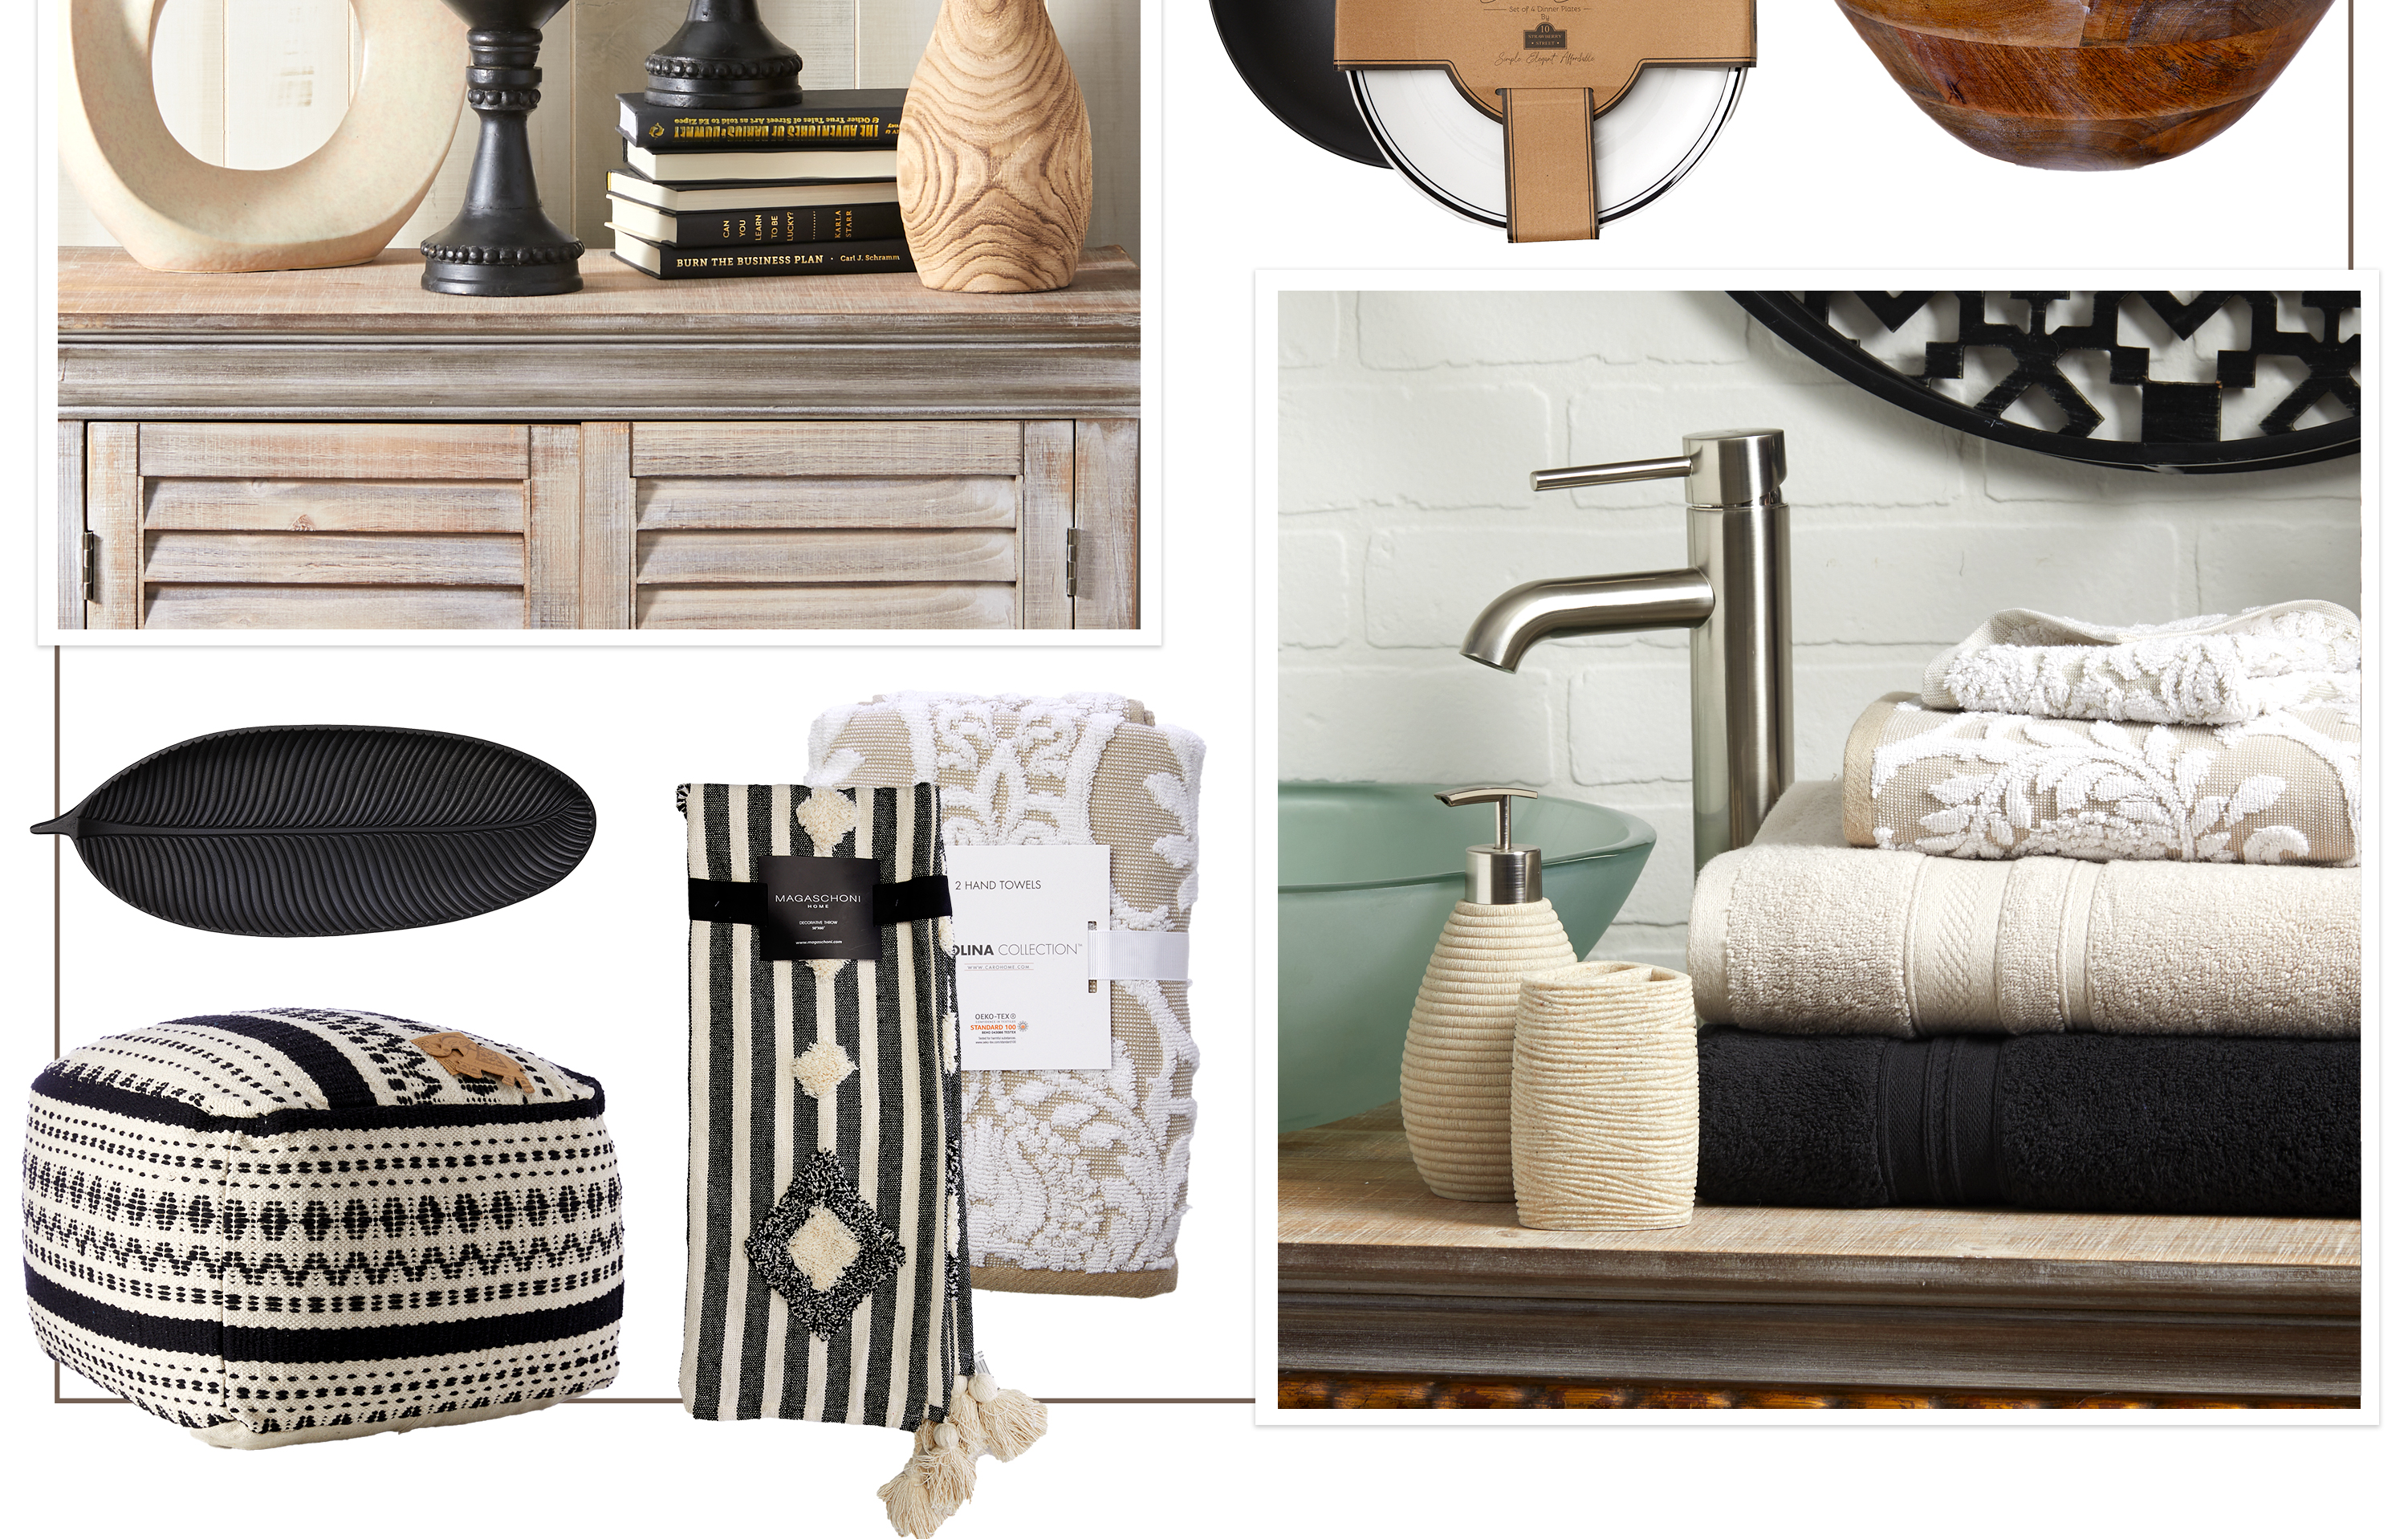 New Traditions - Dark accents and mixed textures update a traditional, neutral palette.